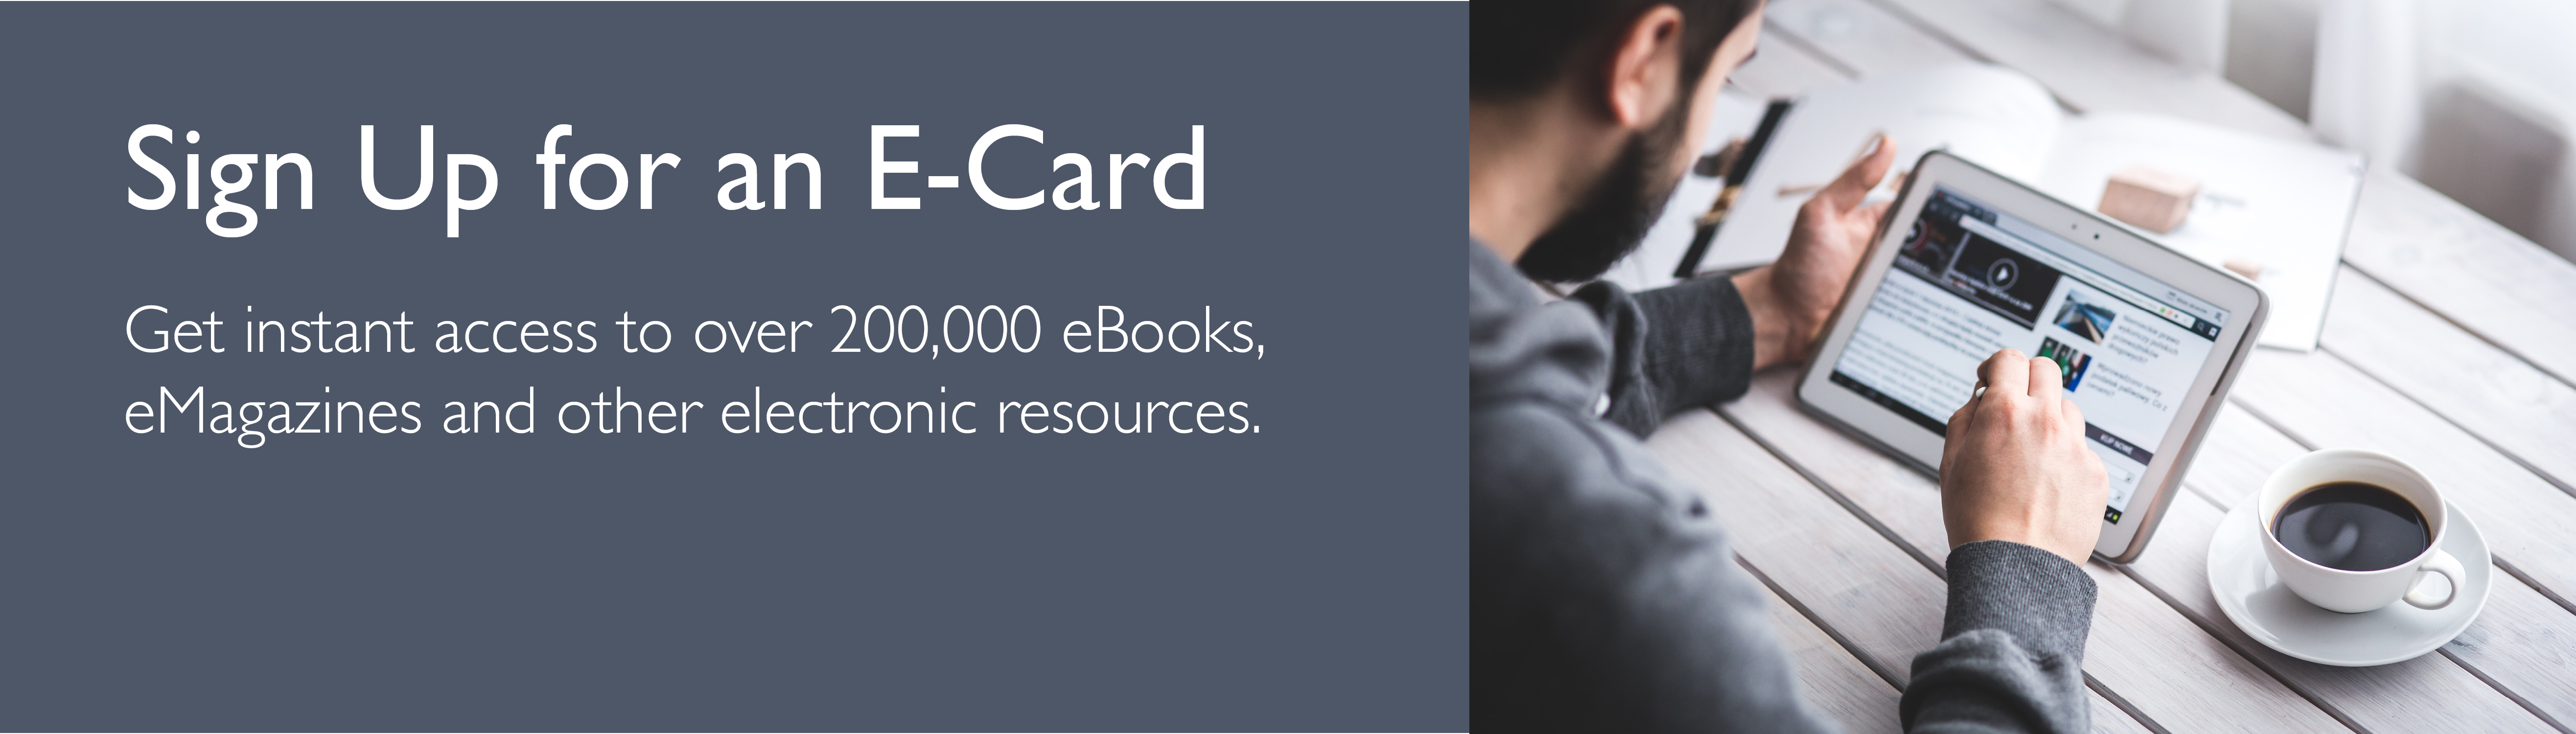 Get instant access to over 200,000 eBooks, eMagazines and other electronic resources.